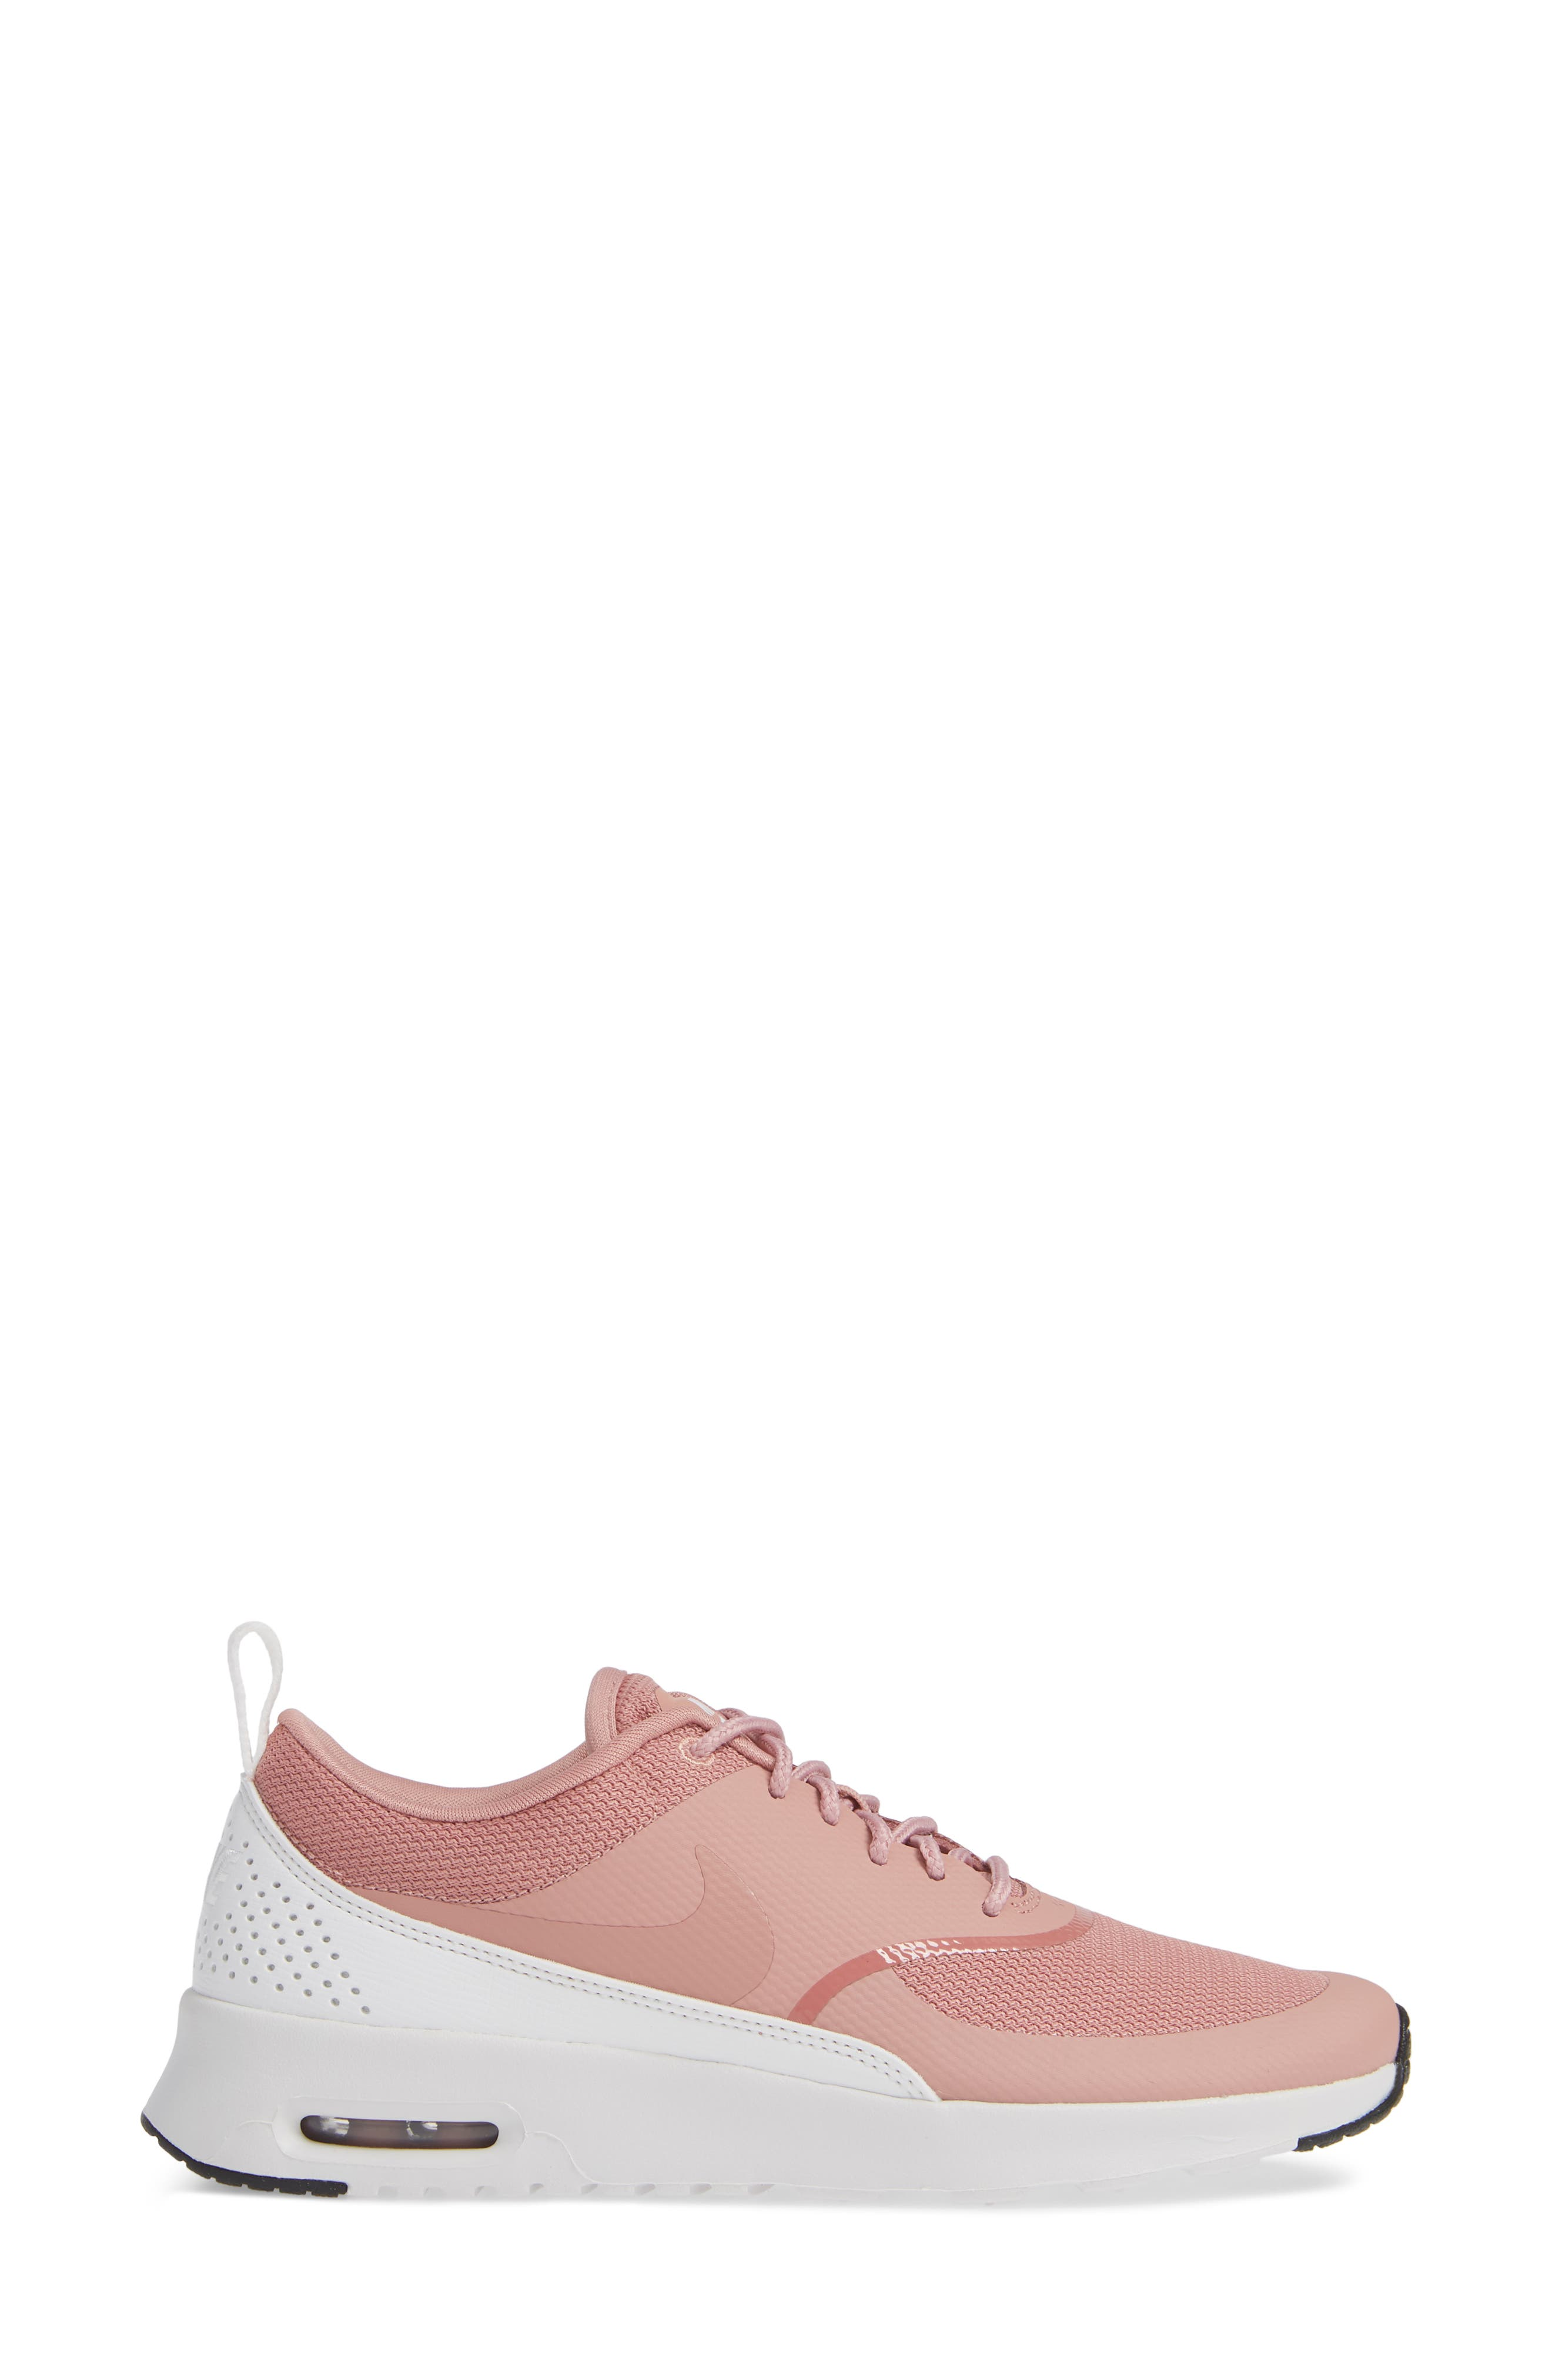 Air Max Thea Sneaker,                             Alternate thumbnail 3, color,                             RUST PINK/ WHITE/ BLACK